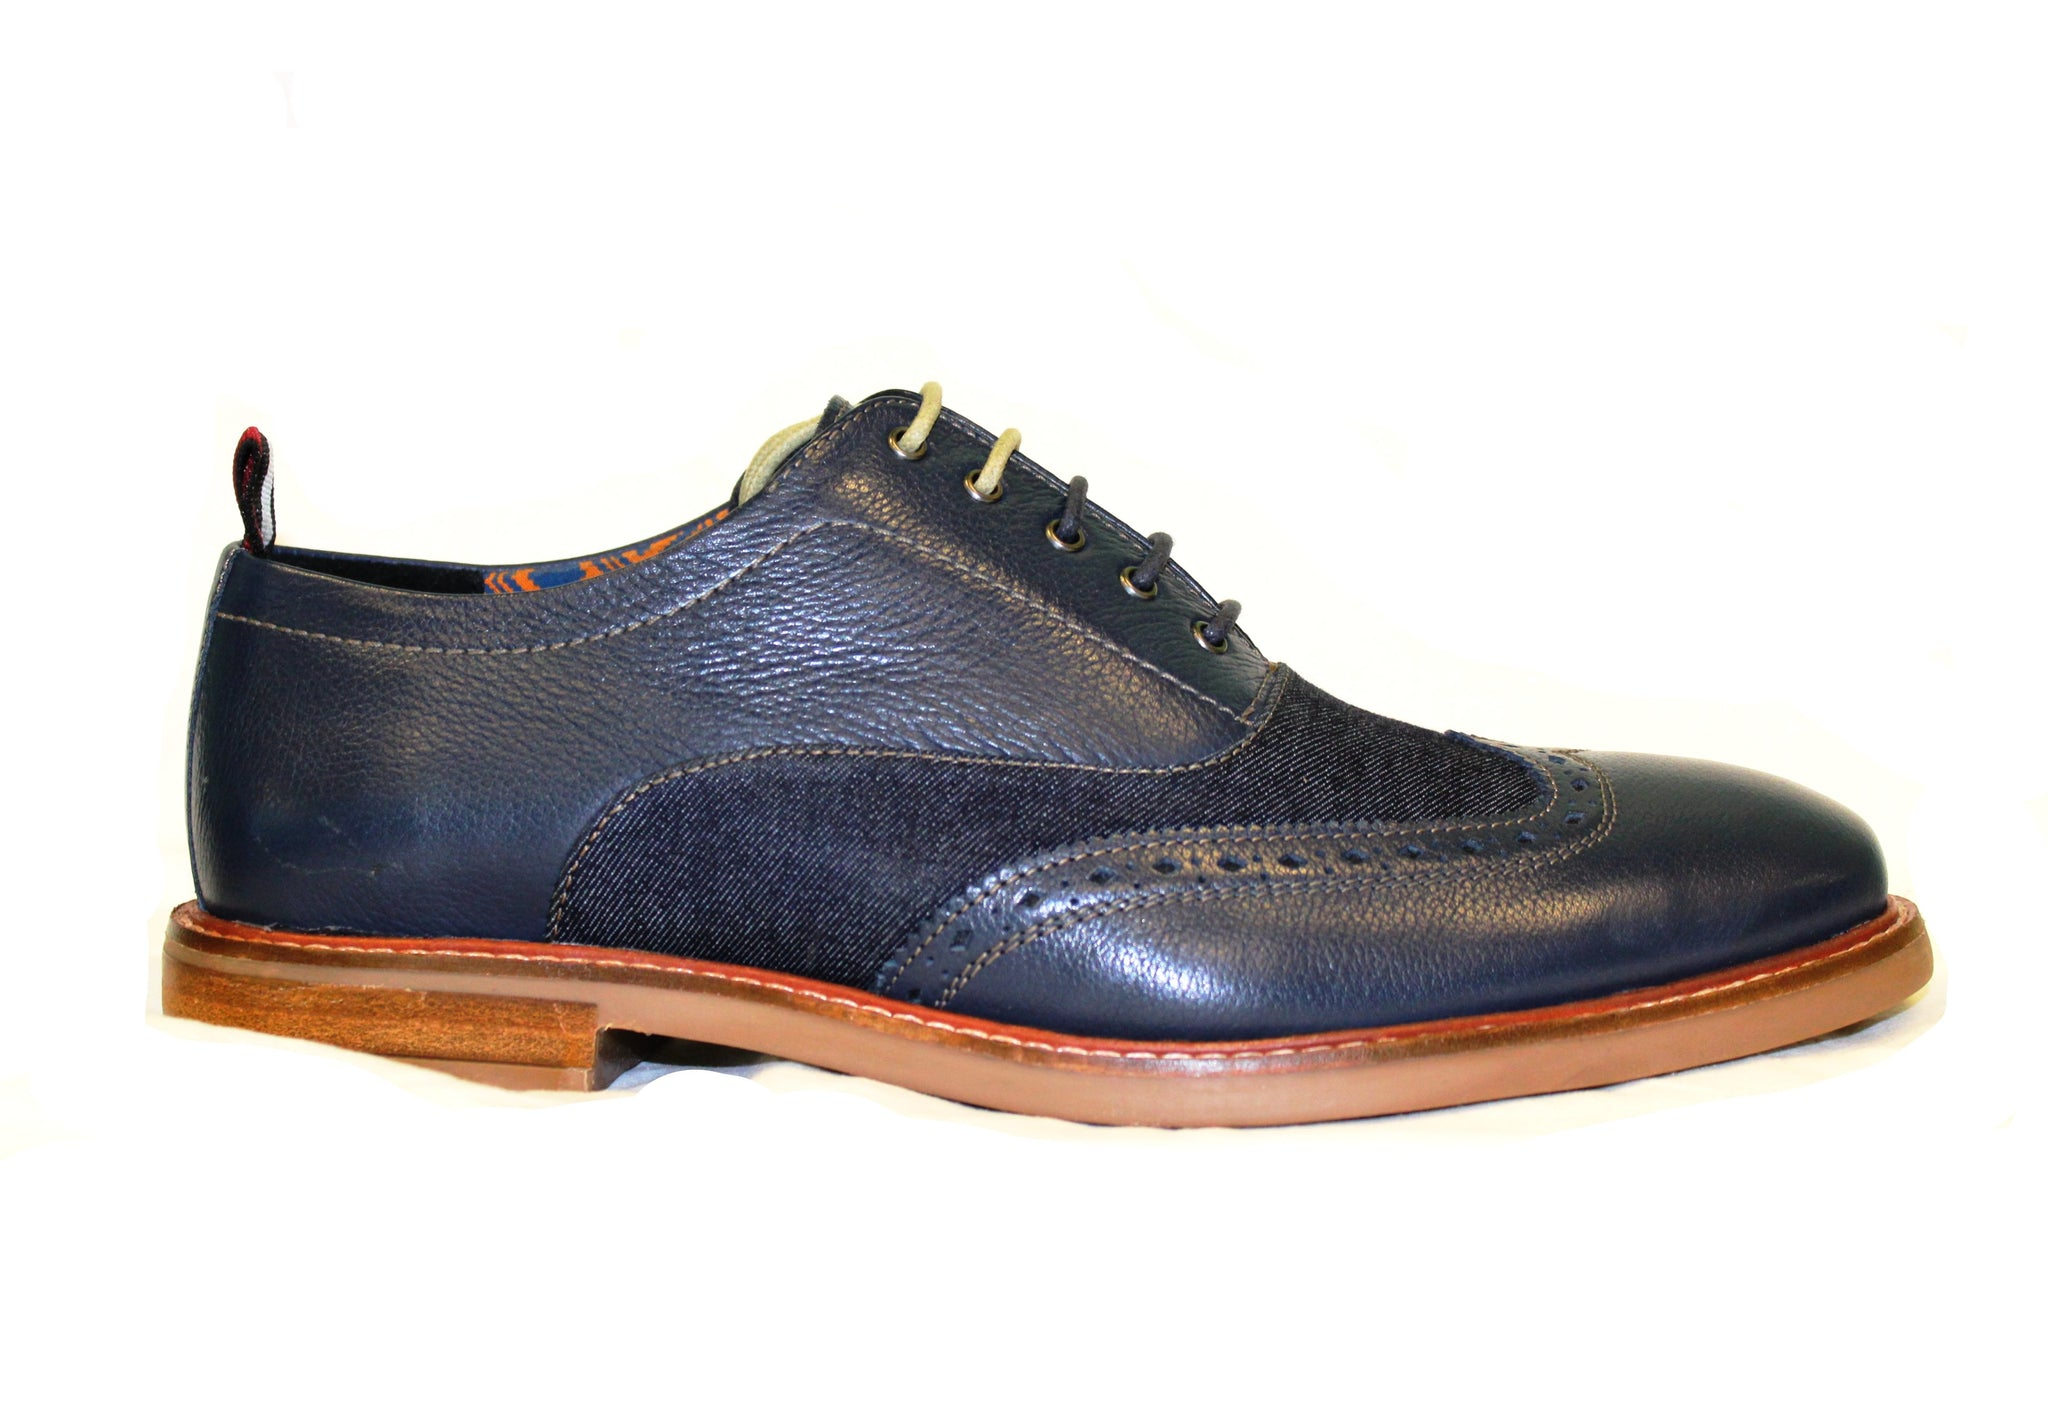 Ben Sherman Navy Birk Short Wing Men's Shoe - Obsessive Shoe Addict